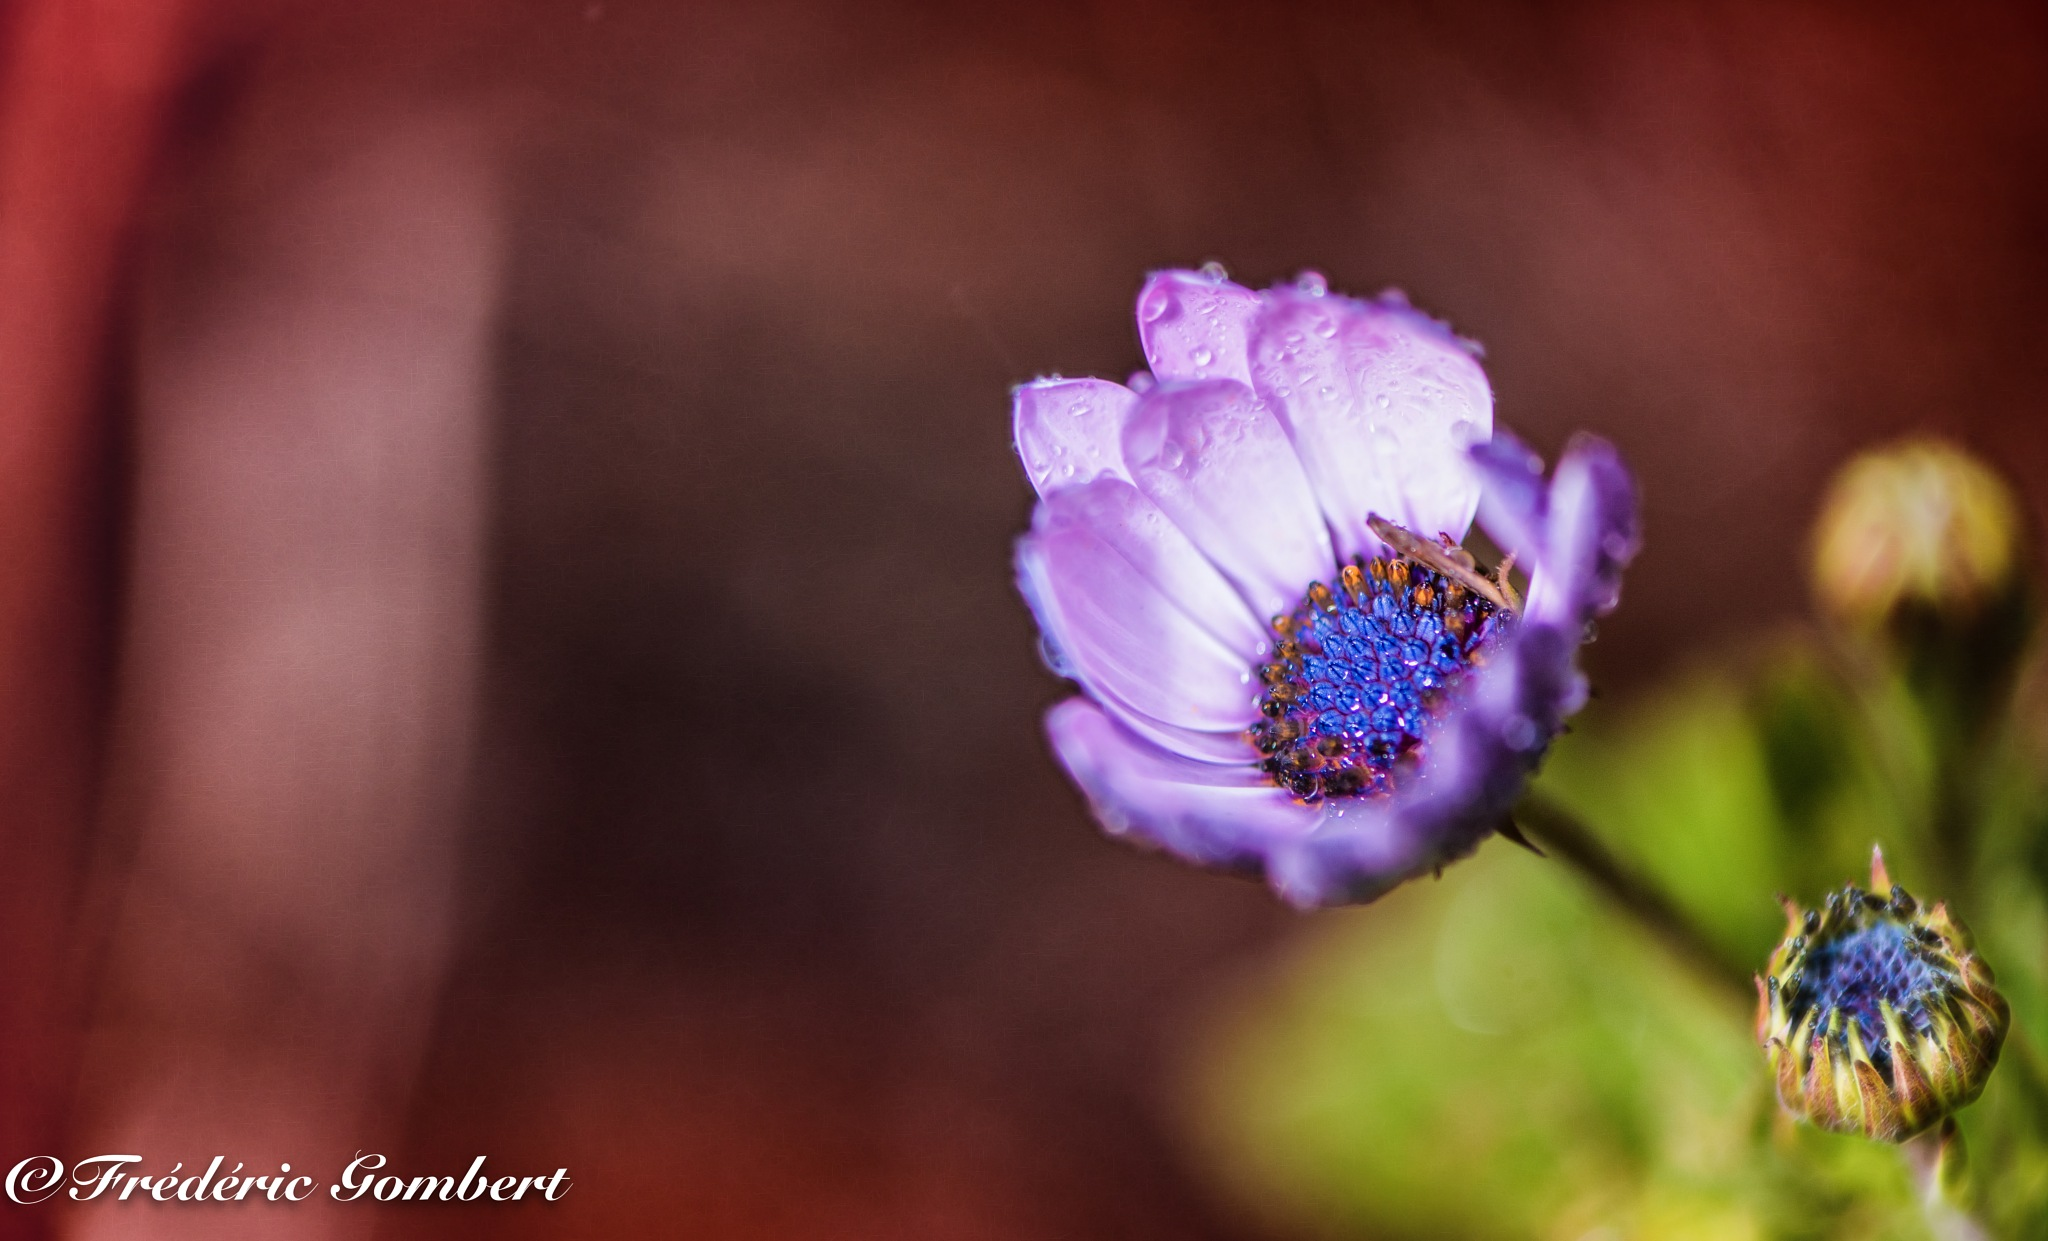 Spring Rain by Frederic Gombert